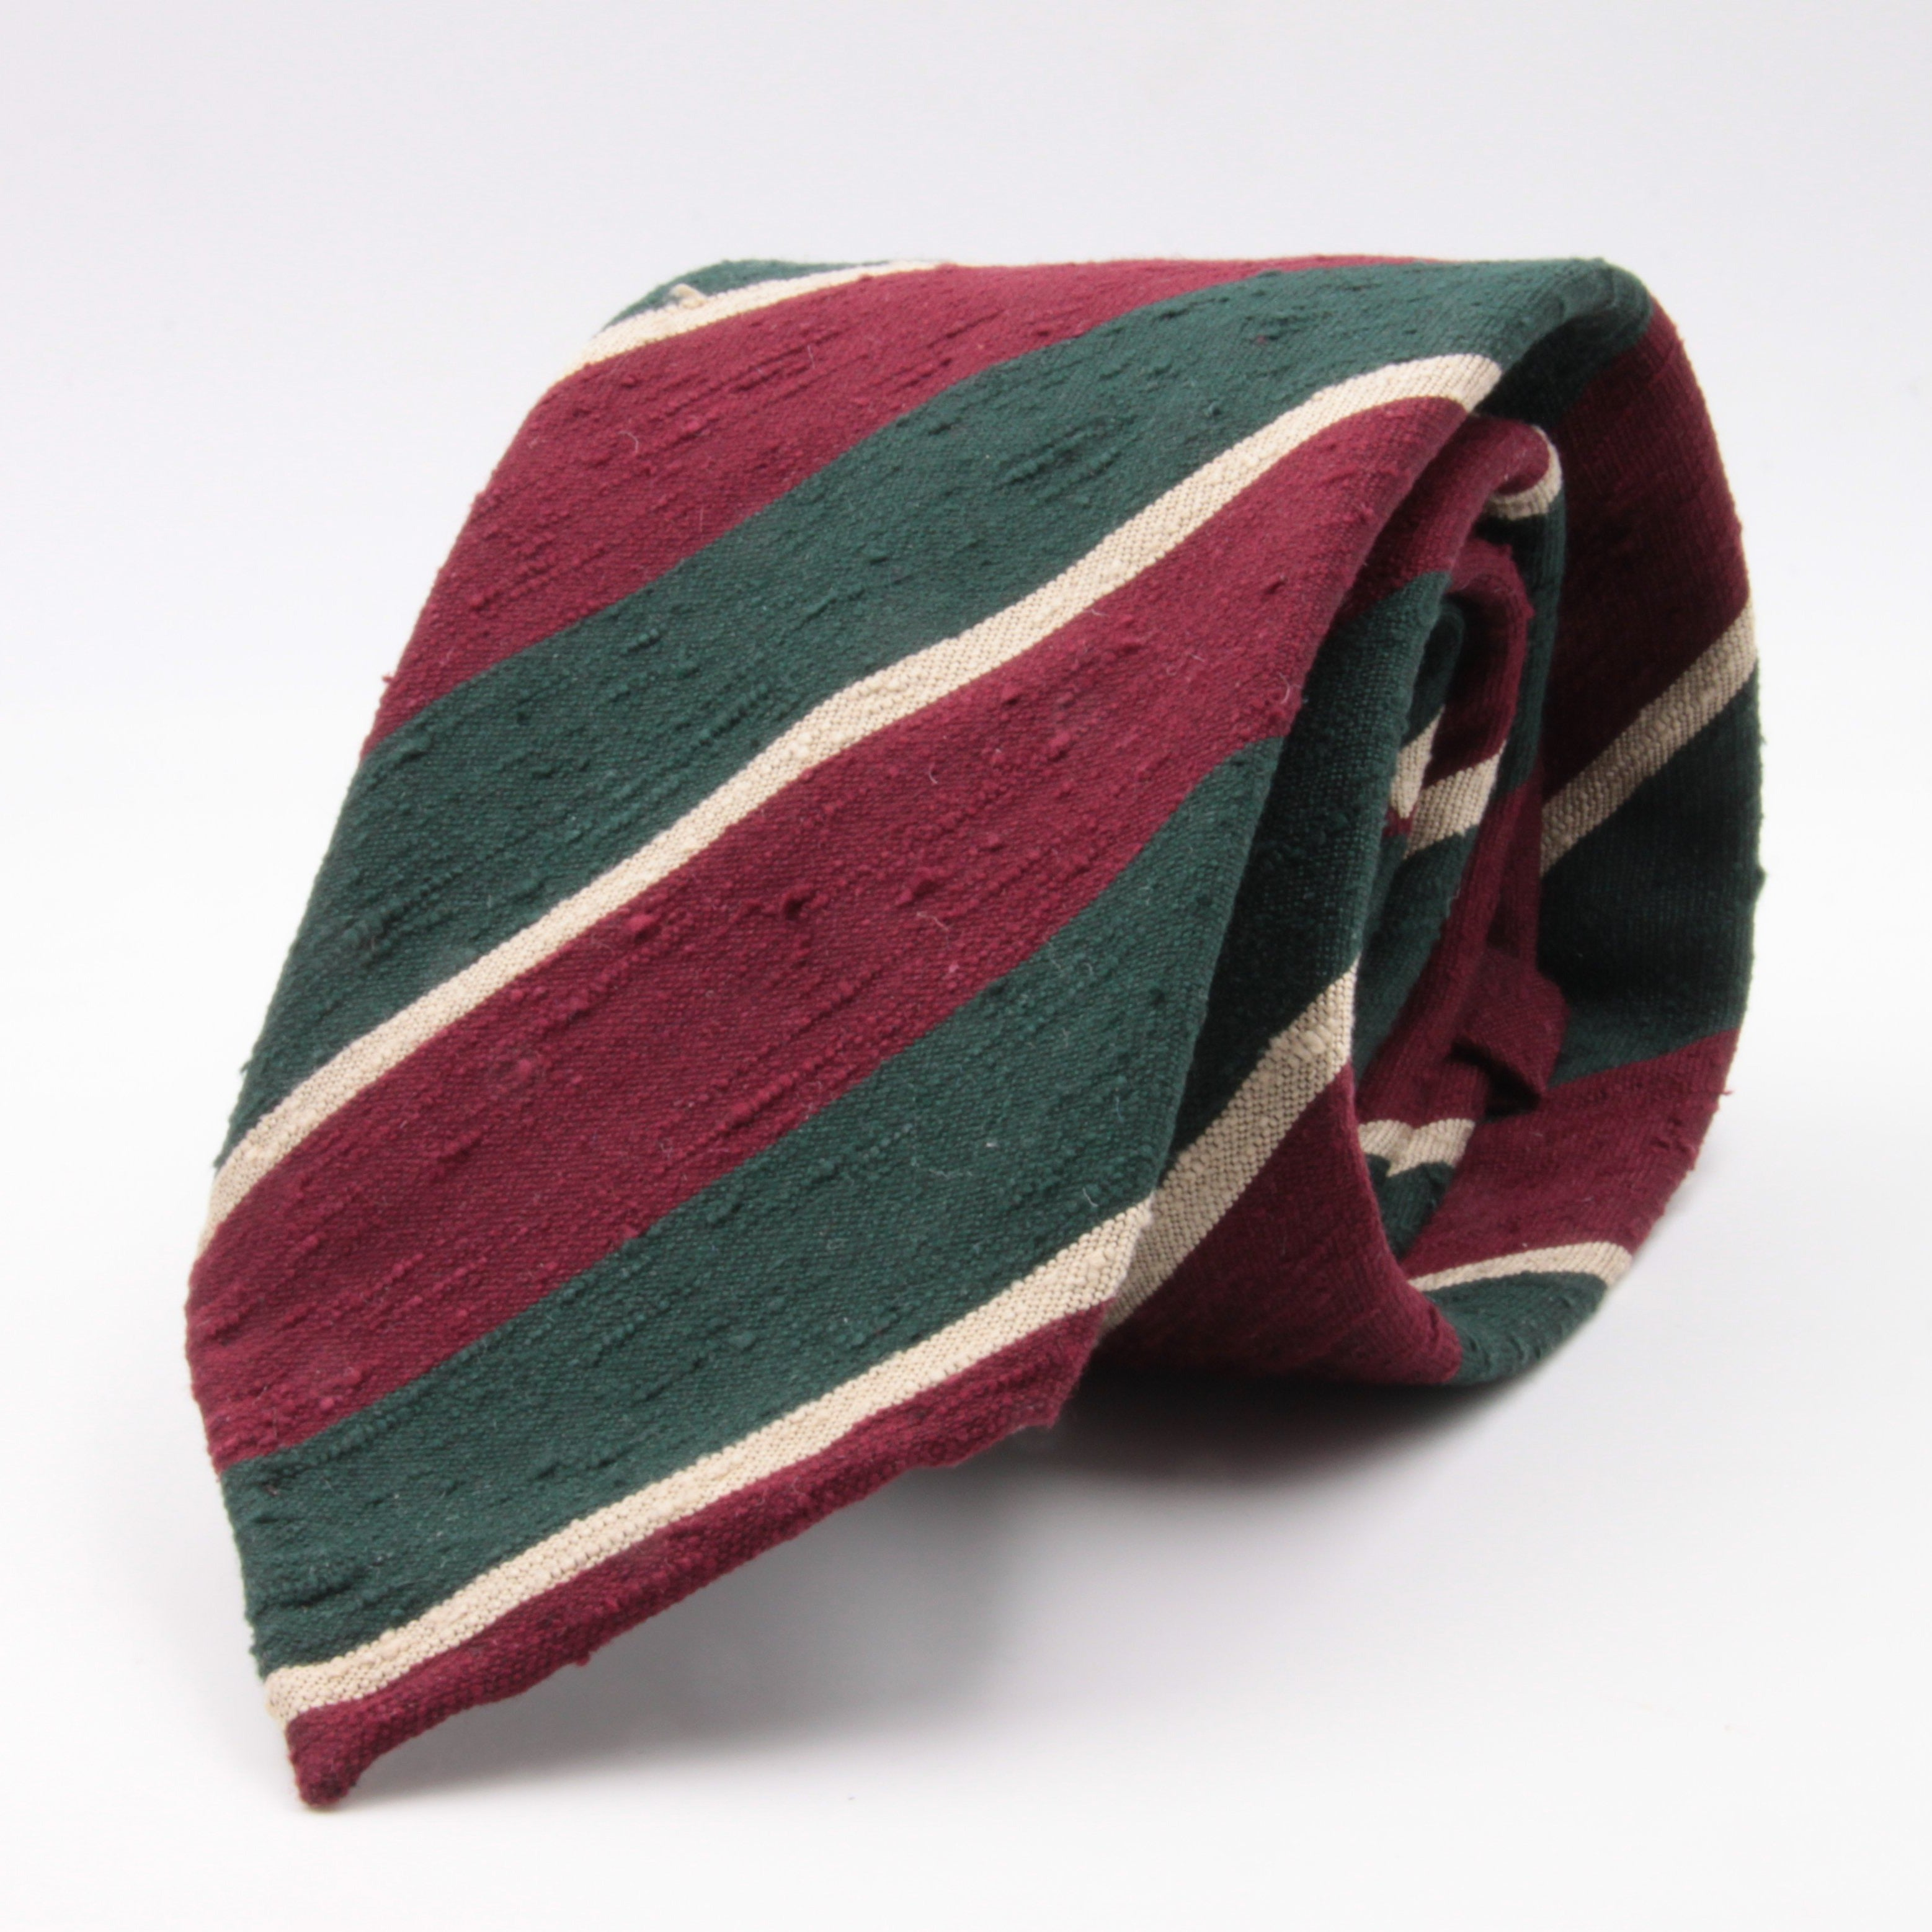 Cruciani & Bella 100% Silk Shantung Unlined Hand rolled blades Green, Burgundy and Yellow stripe tie Handmade in Italy 8 cm x 150 cm